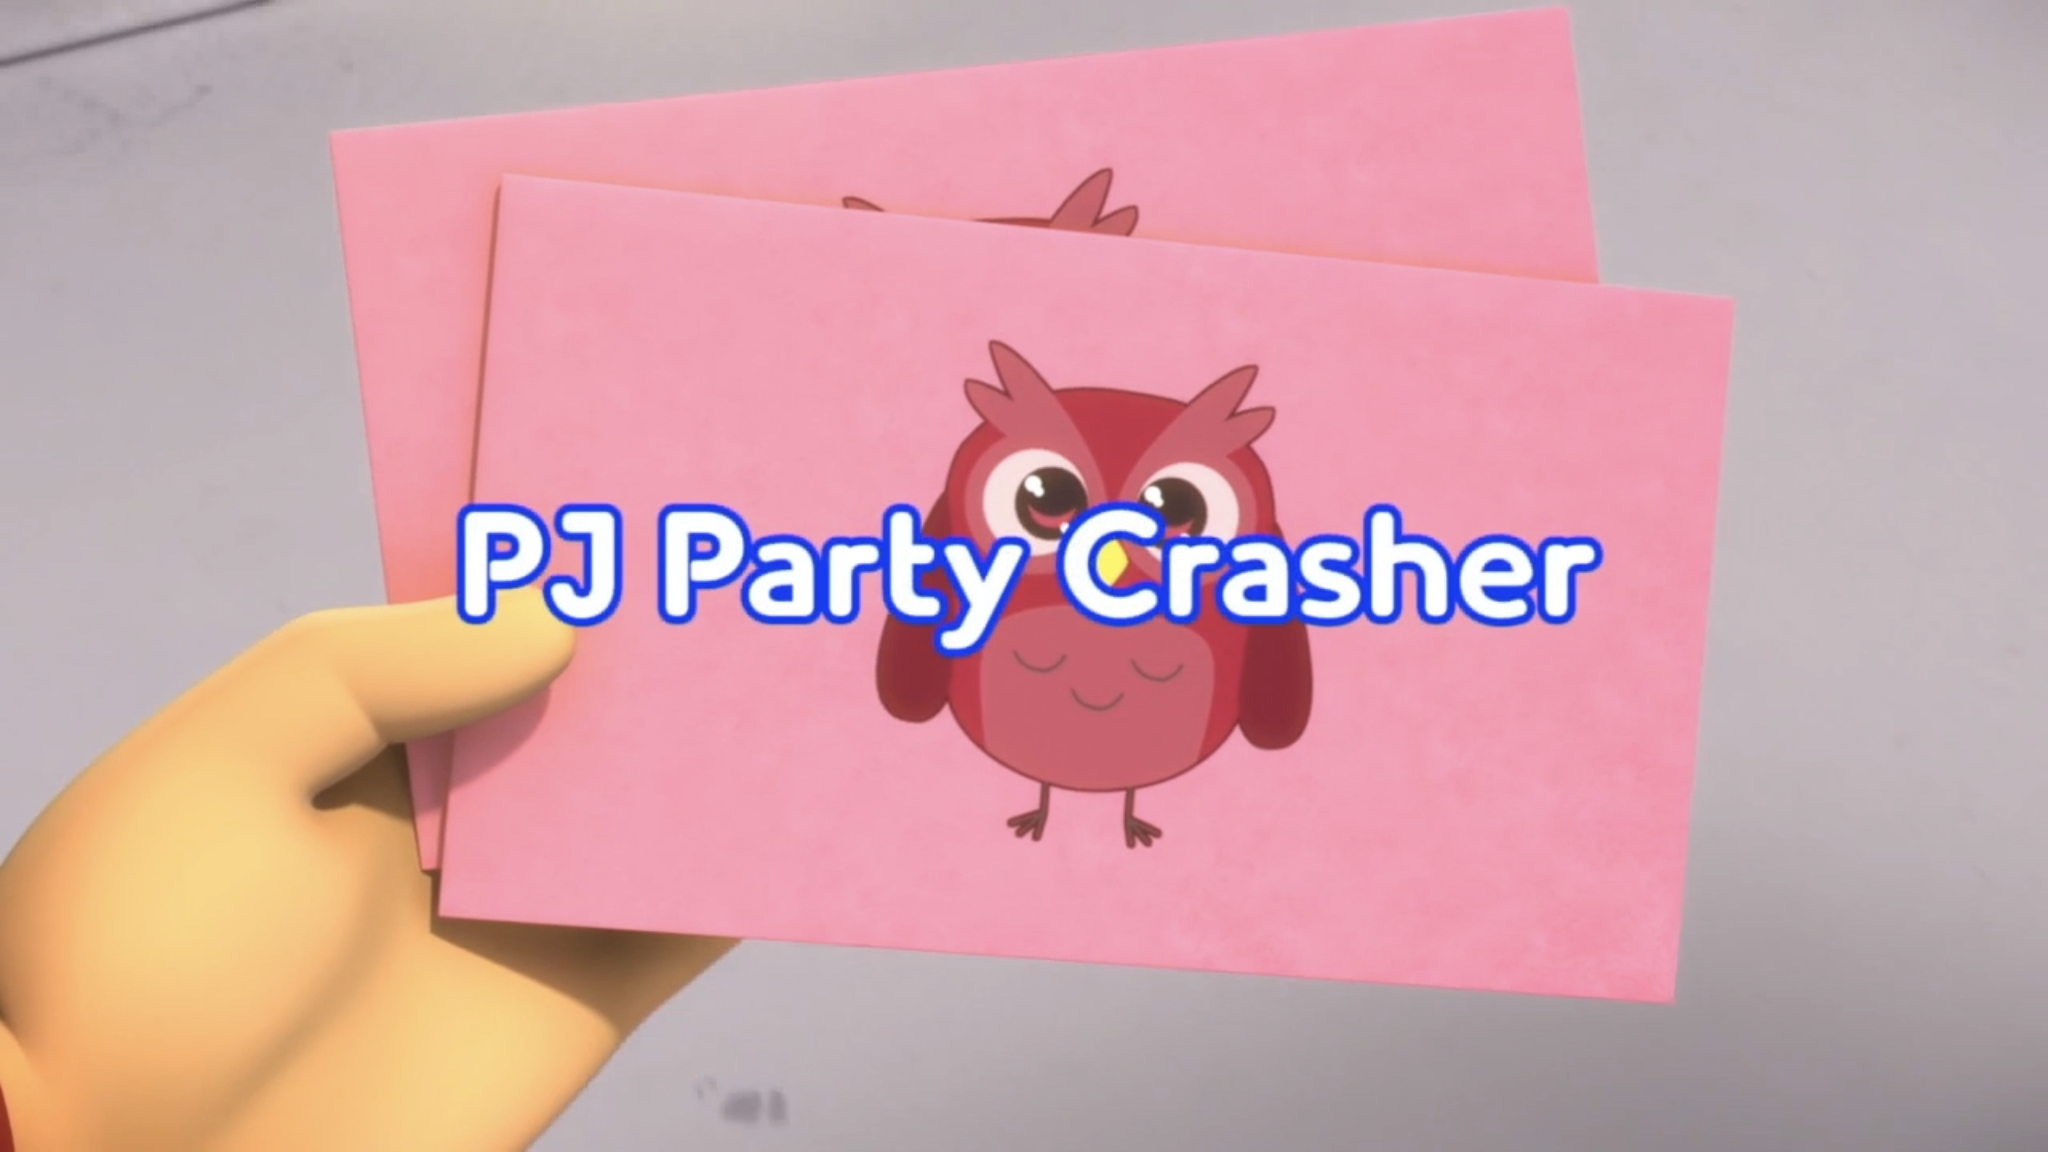 PJ Party Crasher